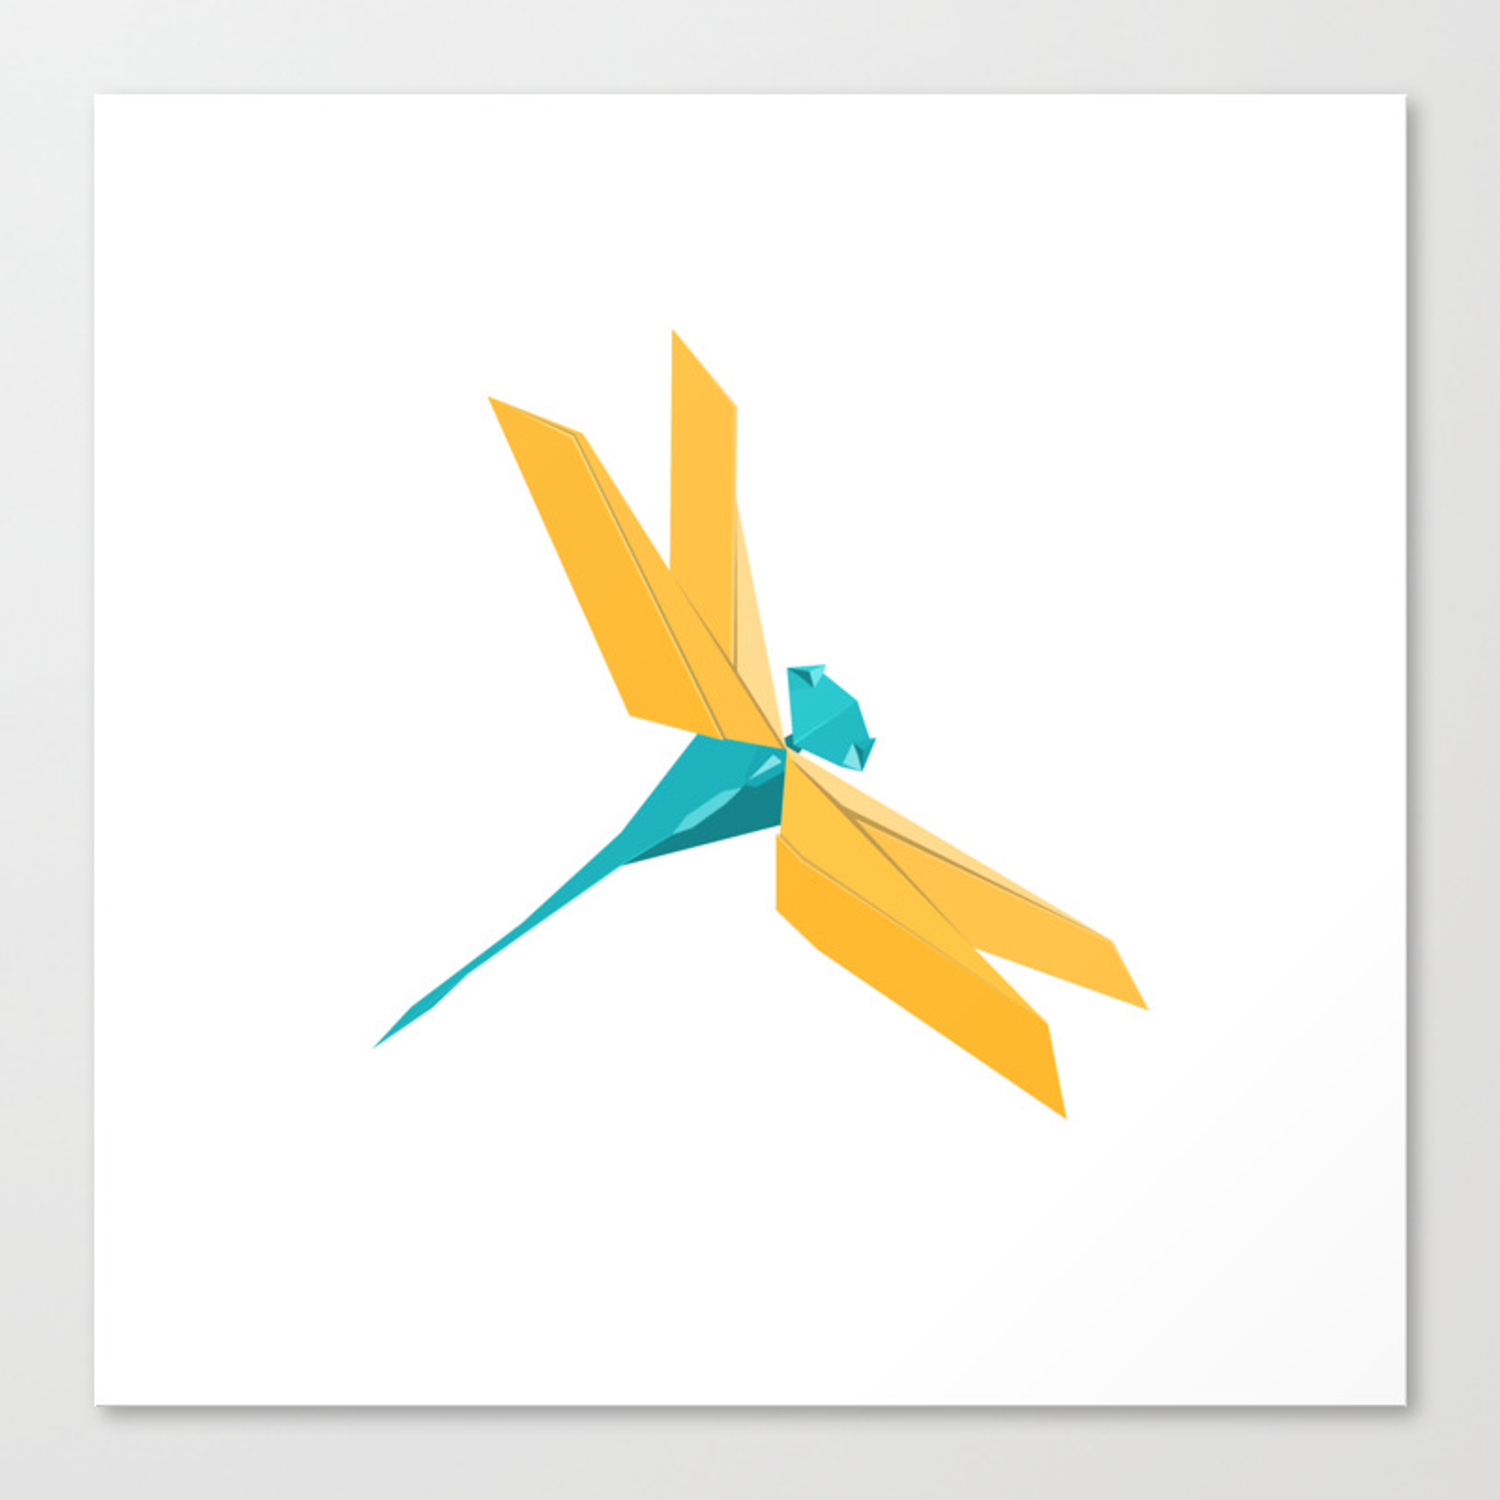 How to Make an Origami Dragonfly | 1500x1500